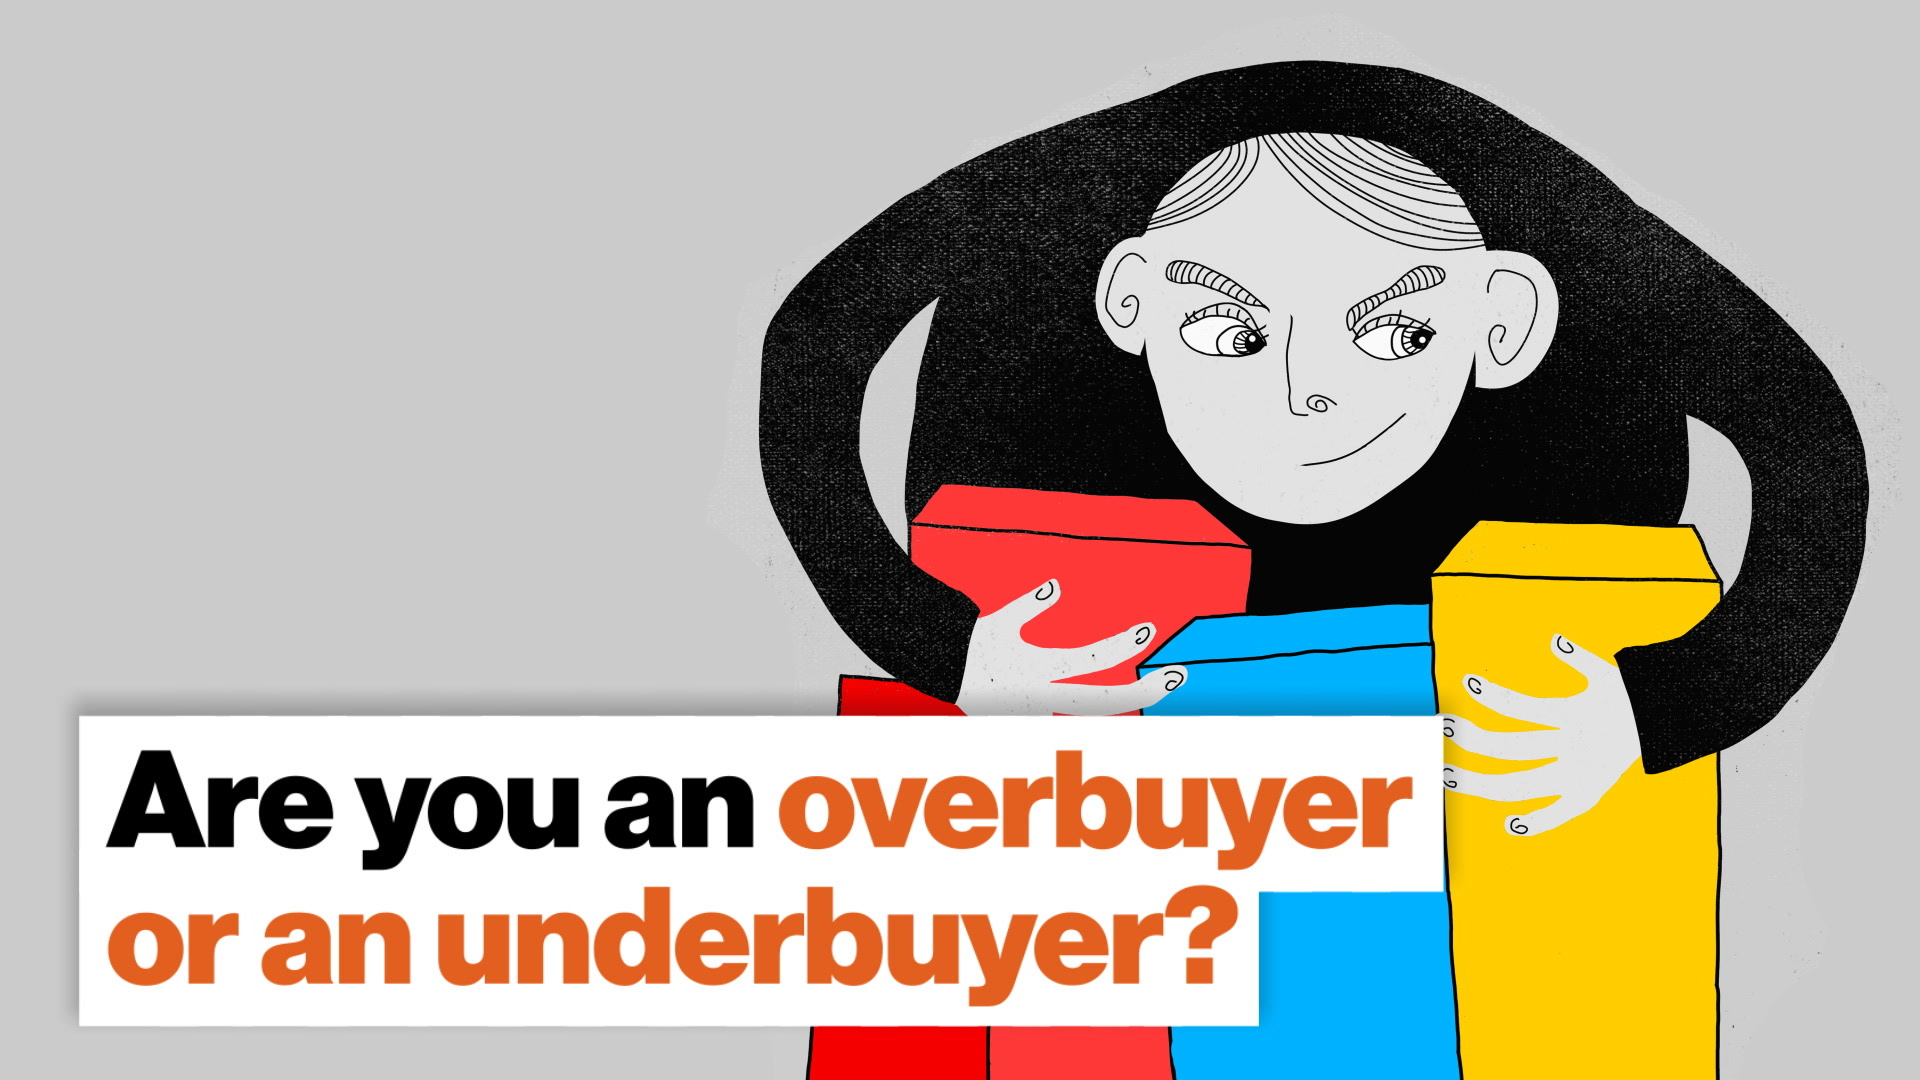 Are you an overbuyer or an underbuyer?